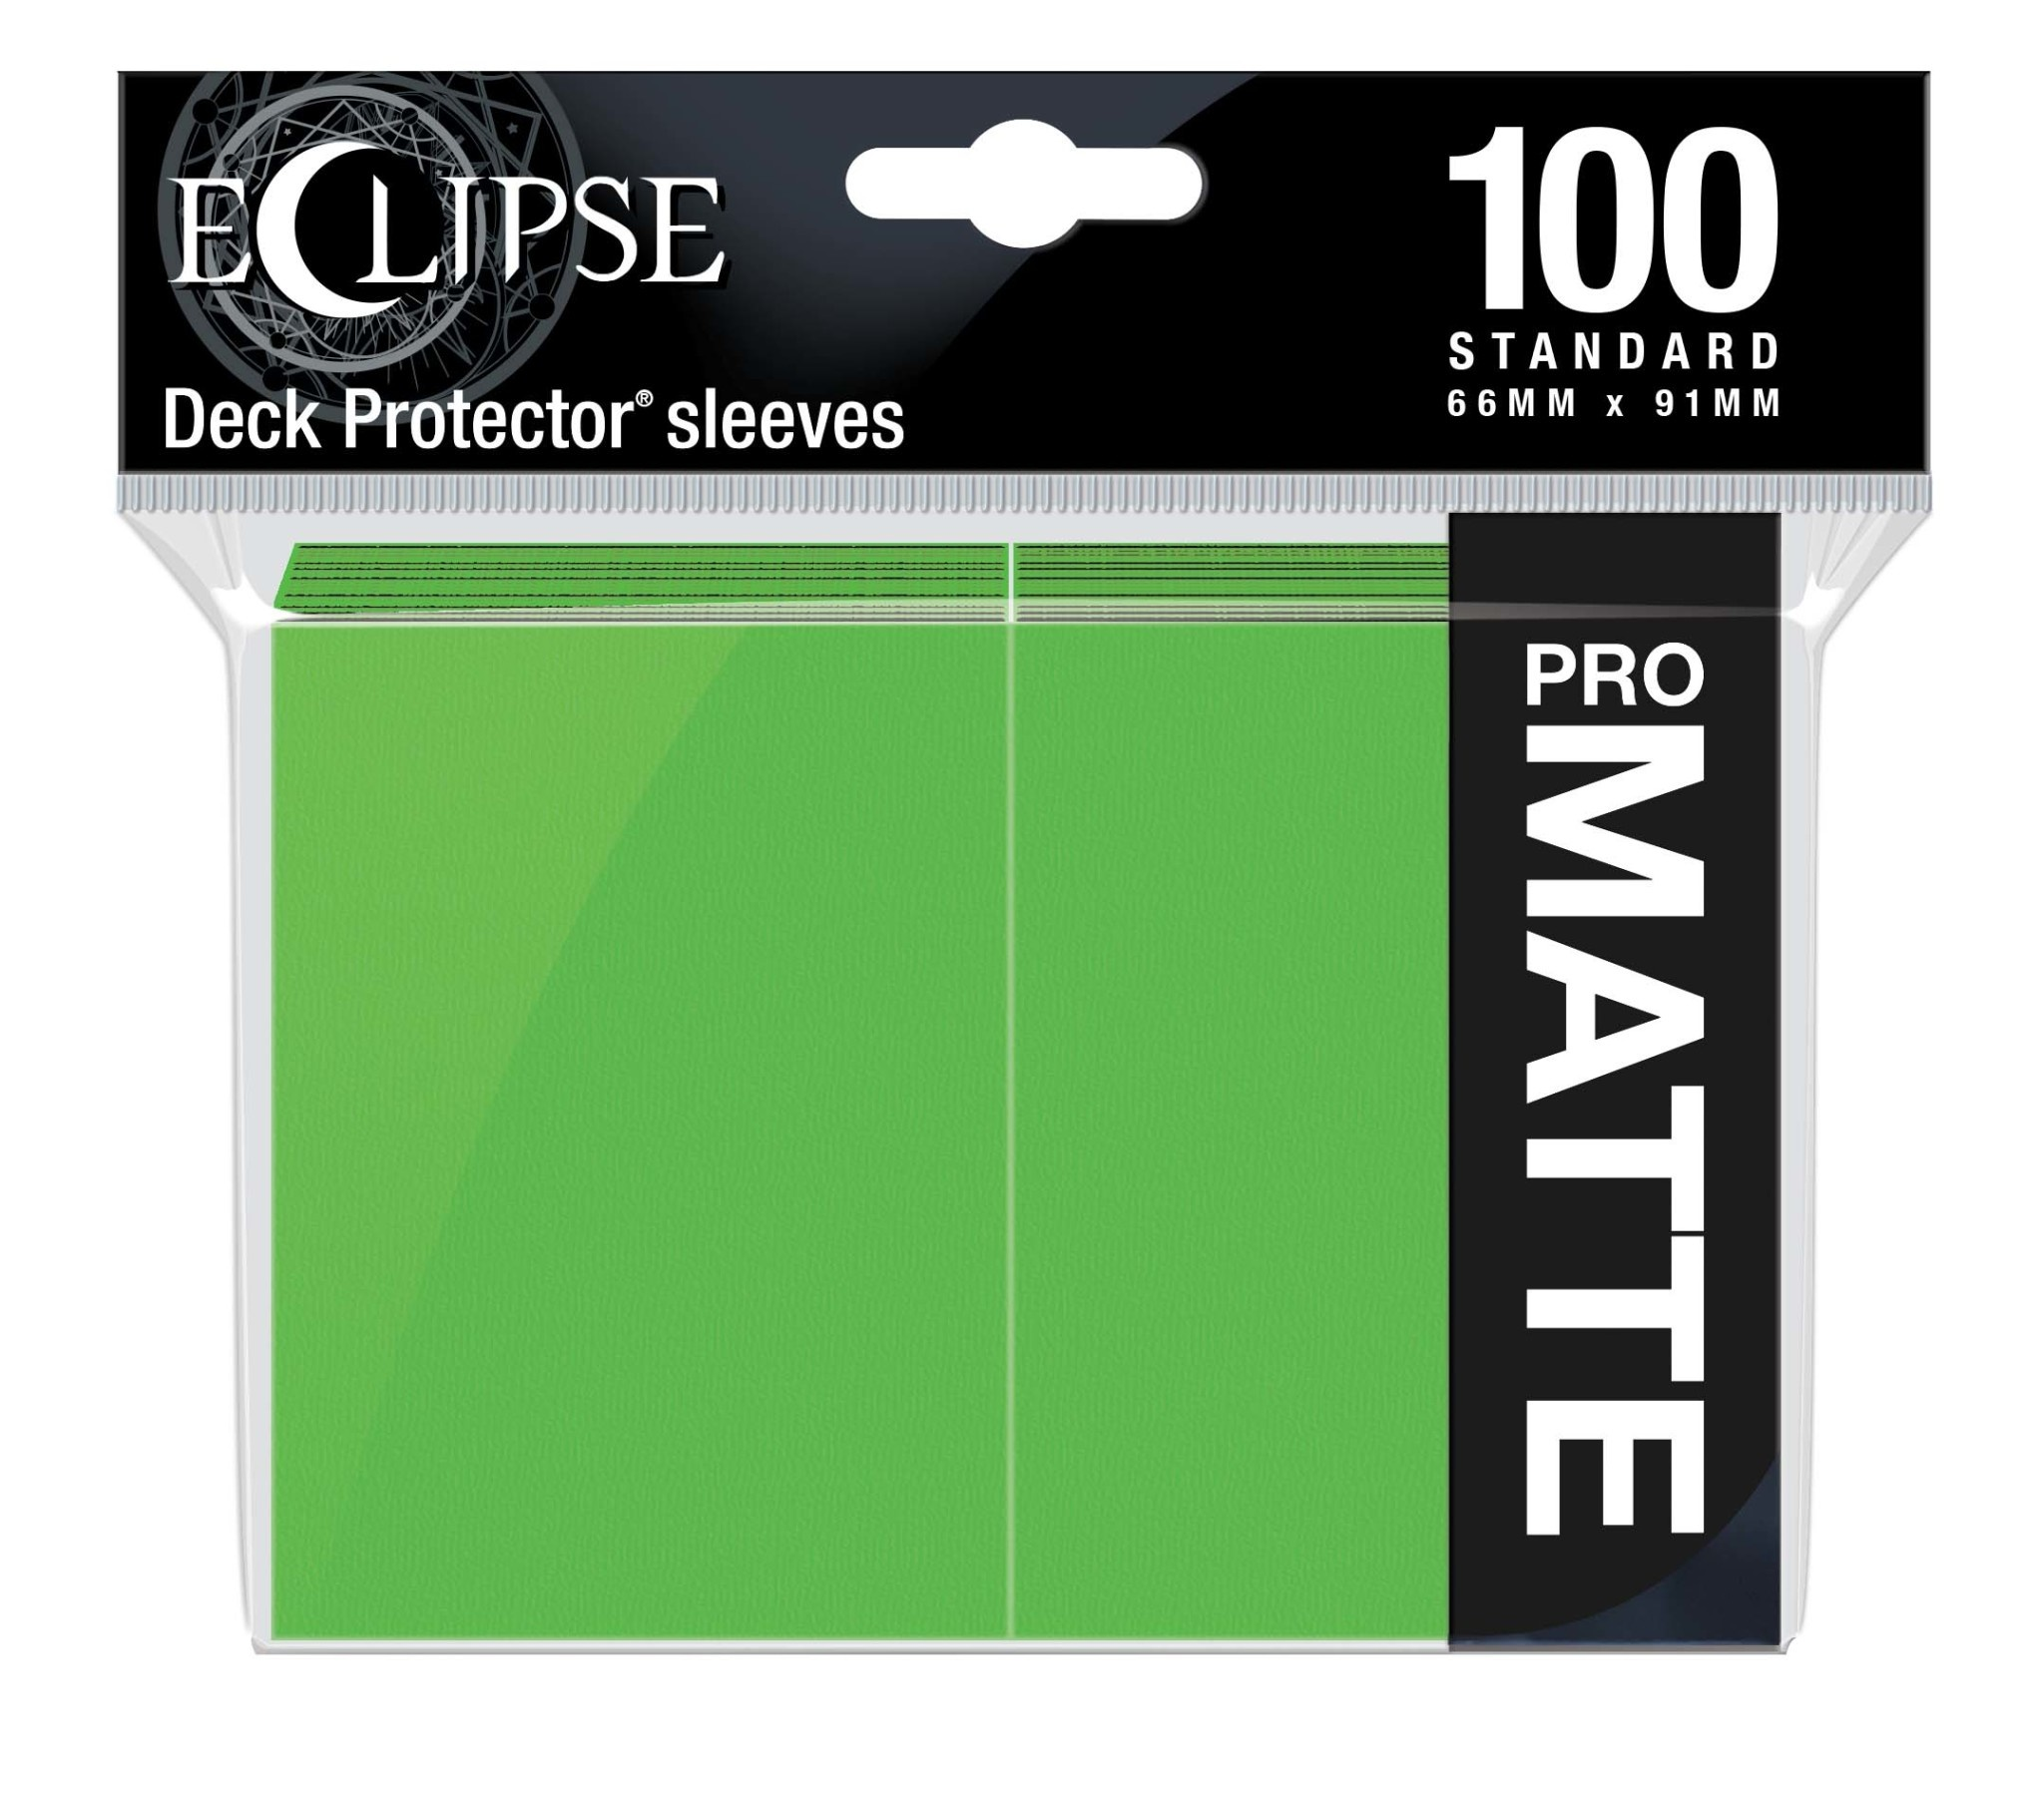 Eclipse Lime Green Standard Matte Sleeves (100ct)